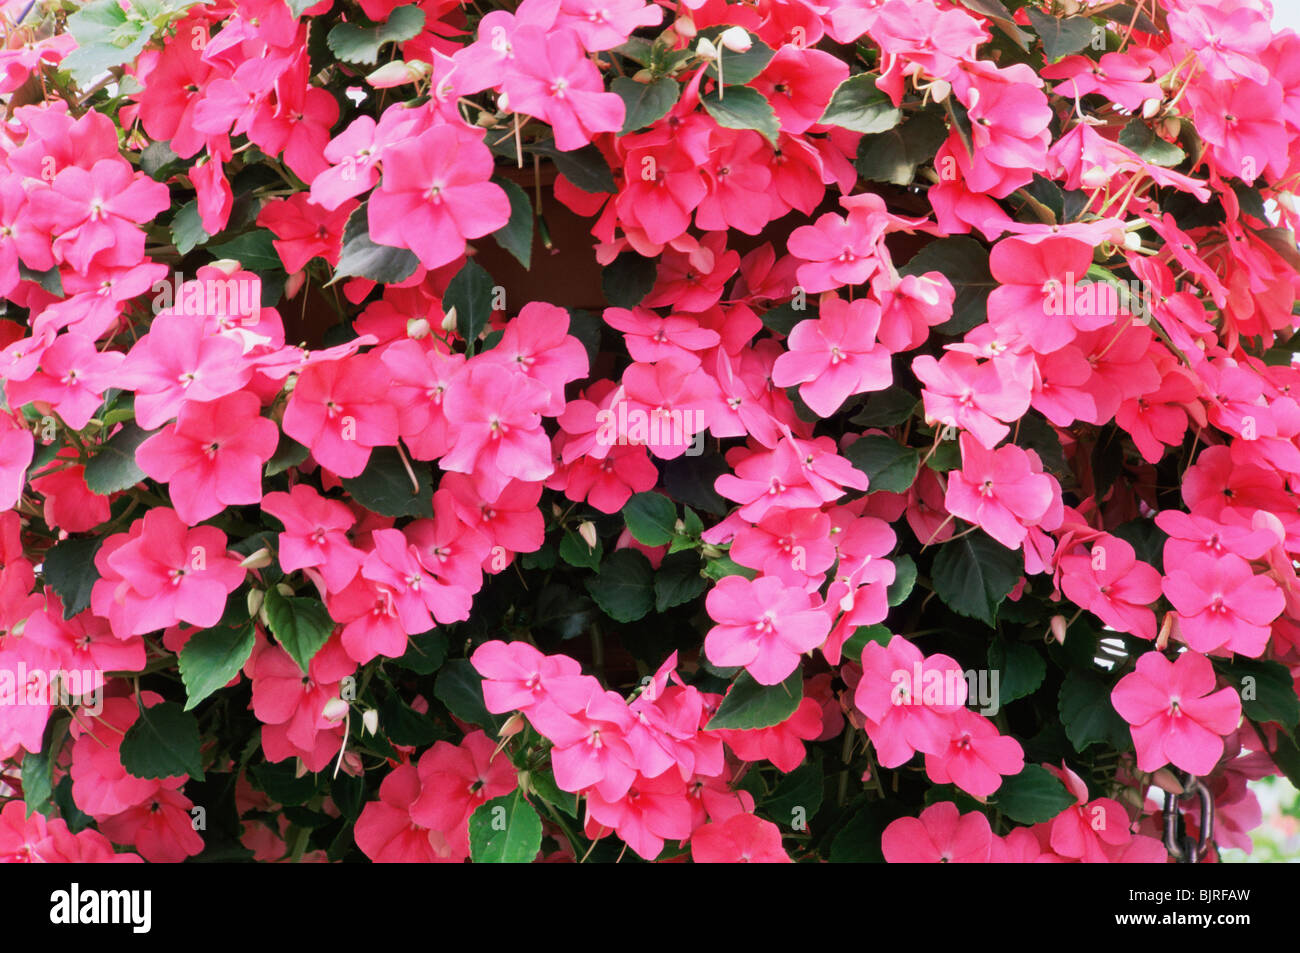 Impatiens Stock Photos Impatiens Stock Images Alamy